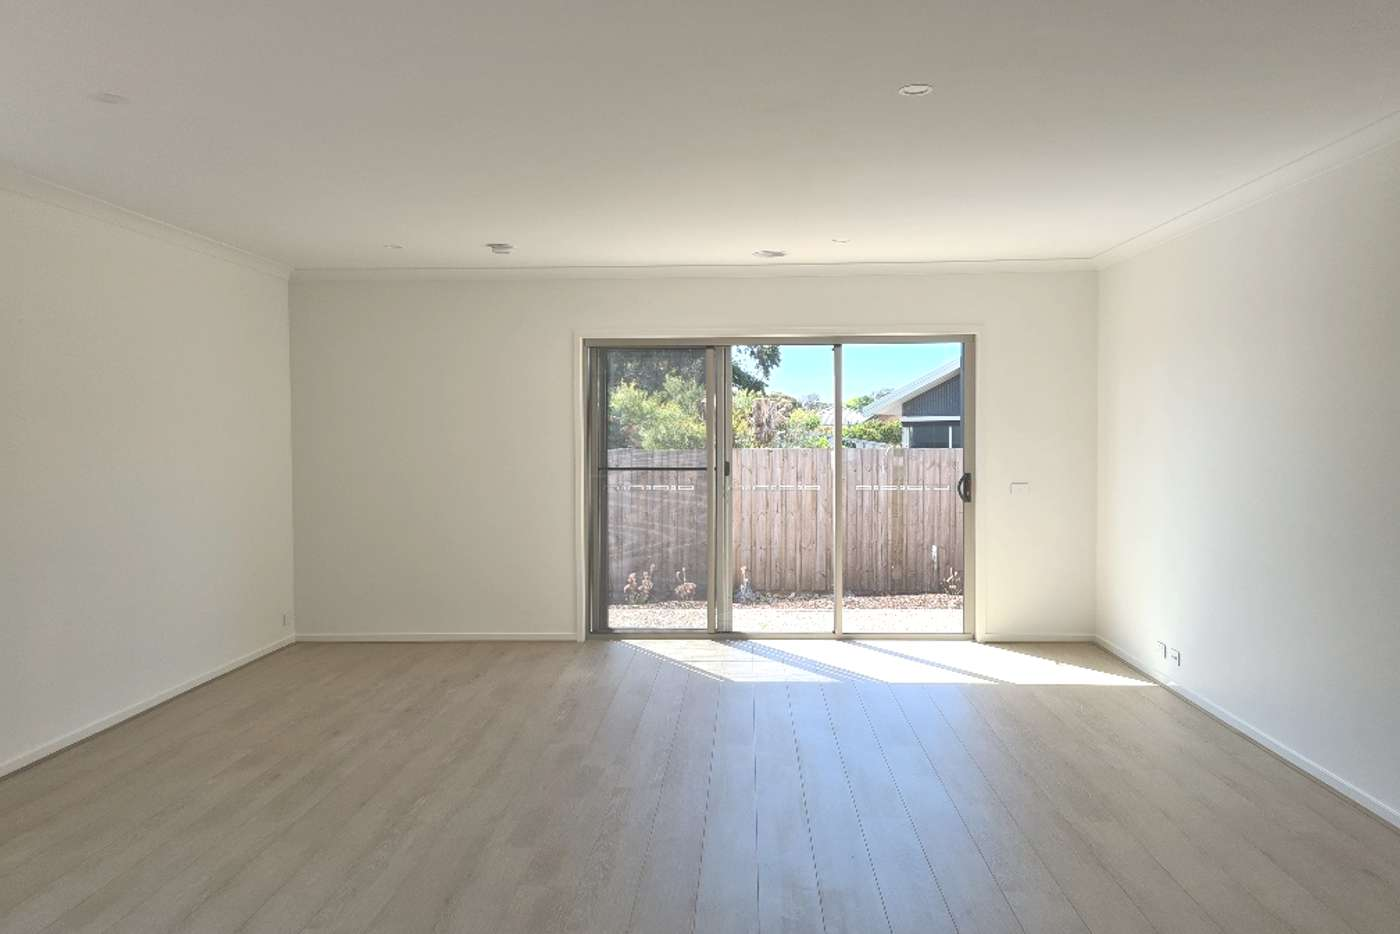 Sixth view of Homely house listing, 83 Cedar Road, Lara VIC 3212